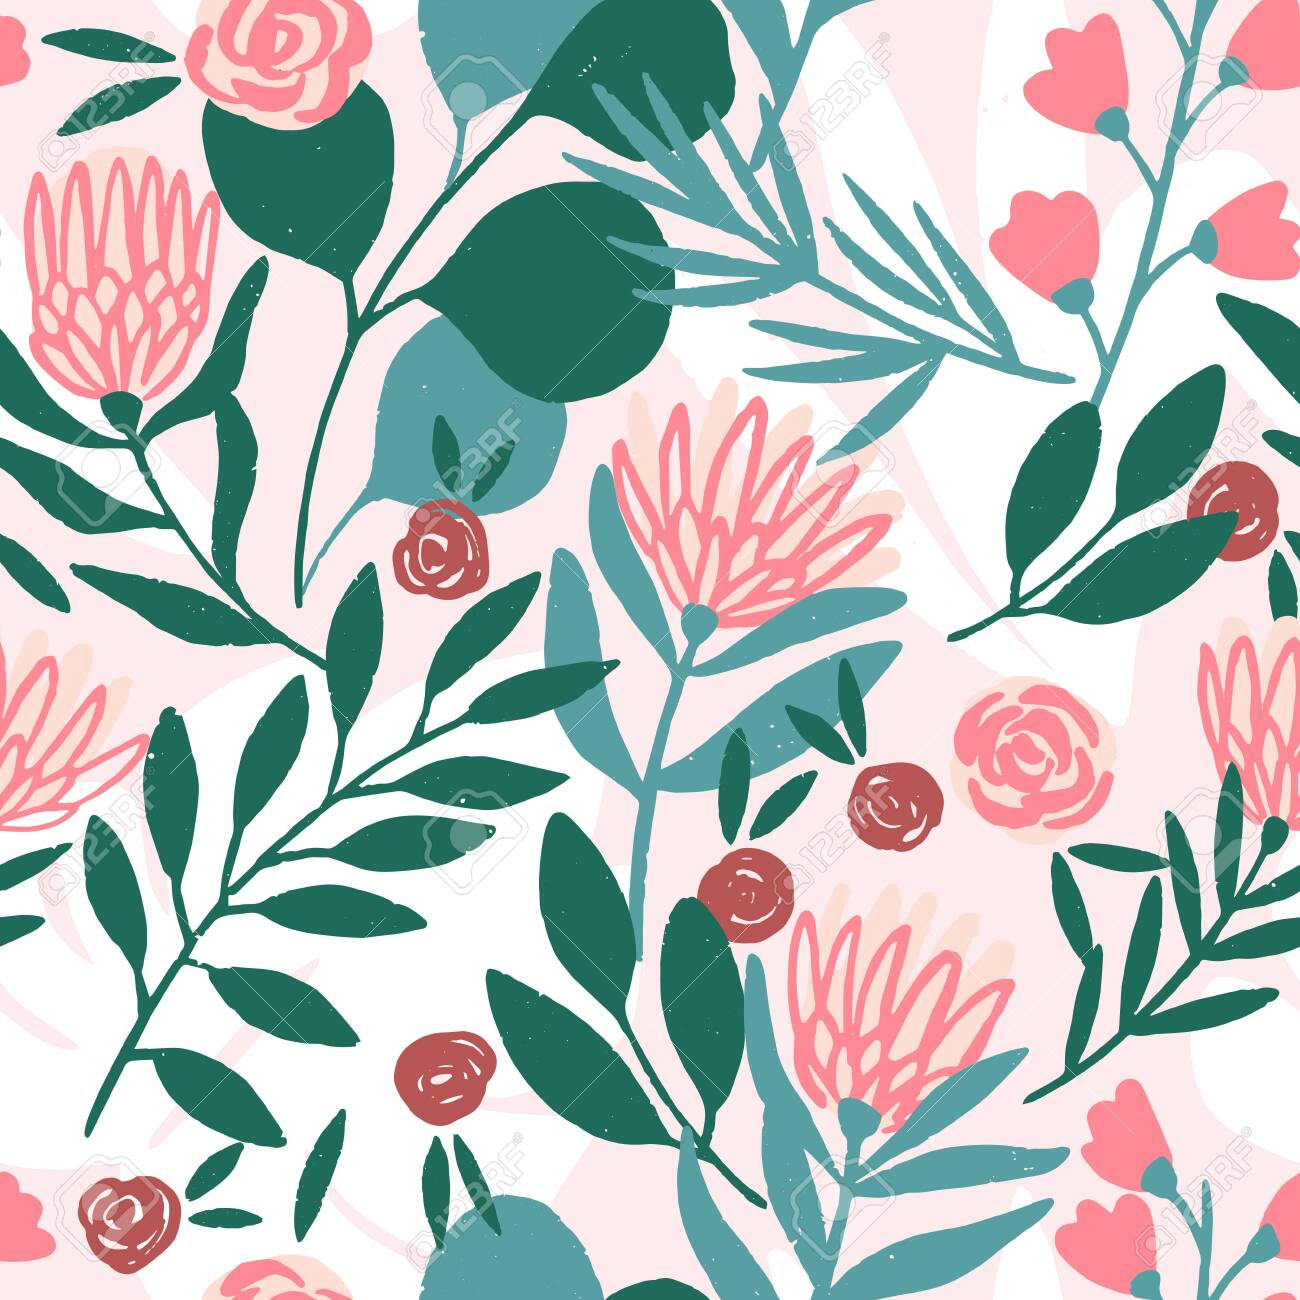 Protea and eucalyptus leaves pattern. Seamless motif for wrapping, wallpaper, fabric, decoration print. Vector illustration - 144102764